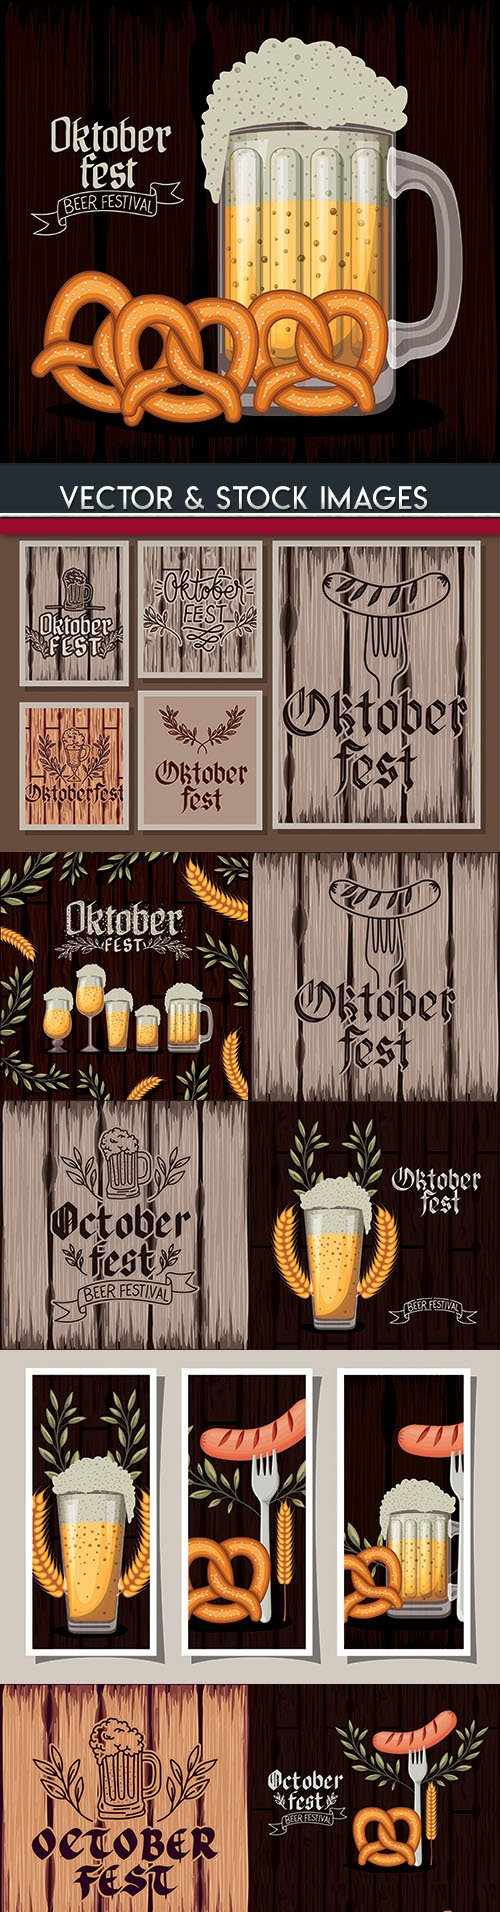 Oktoberfest festival beer labet vintage illustration 3